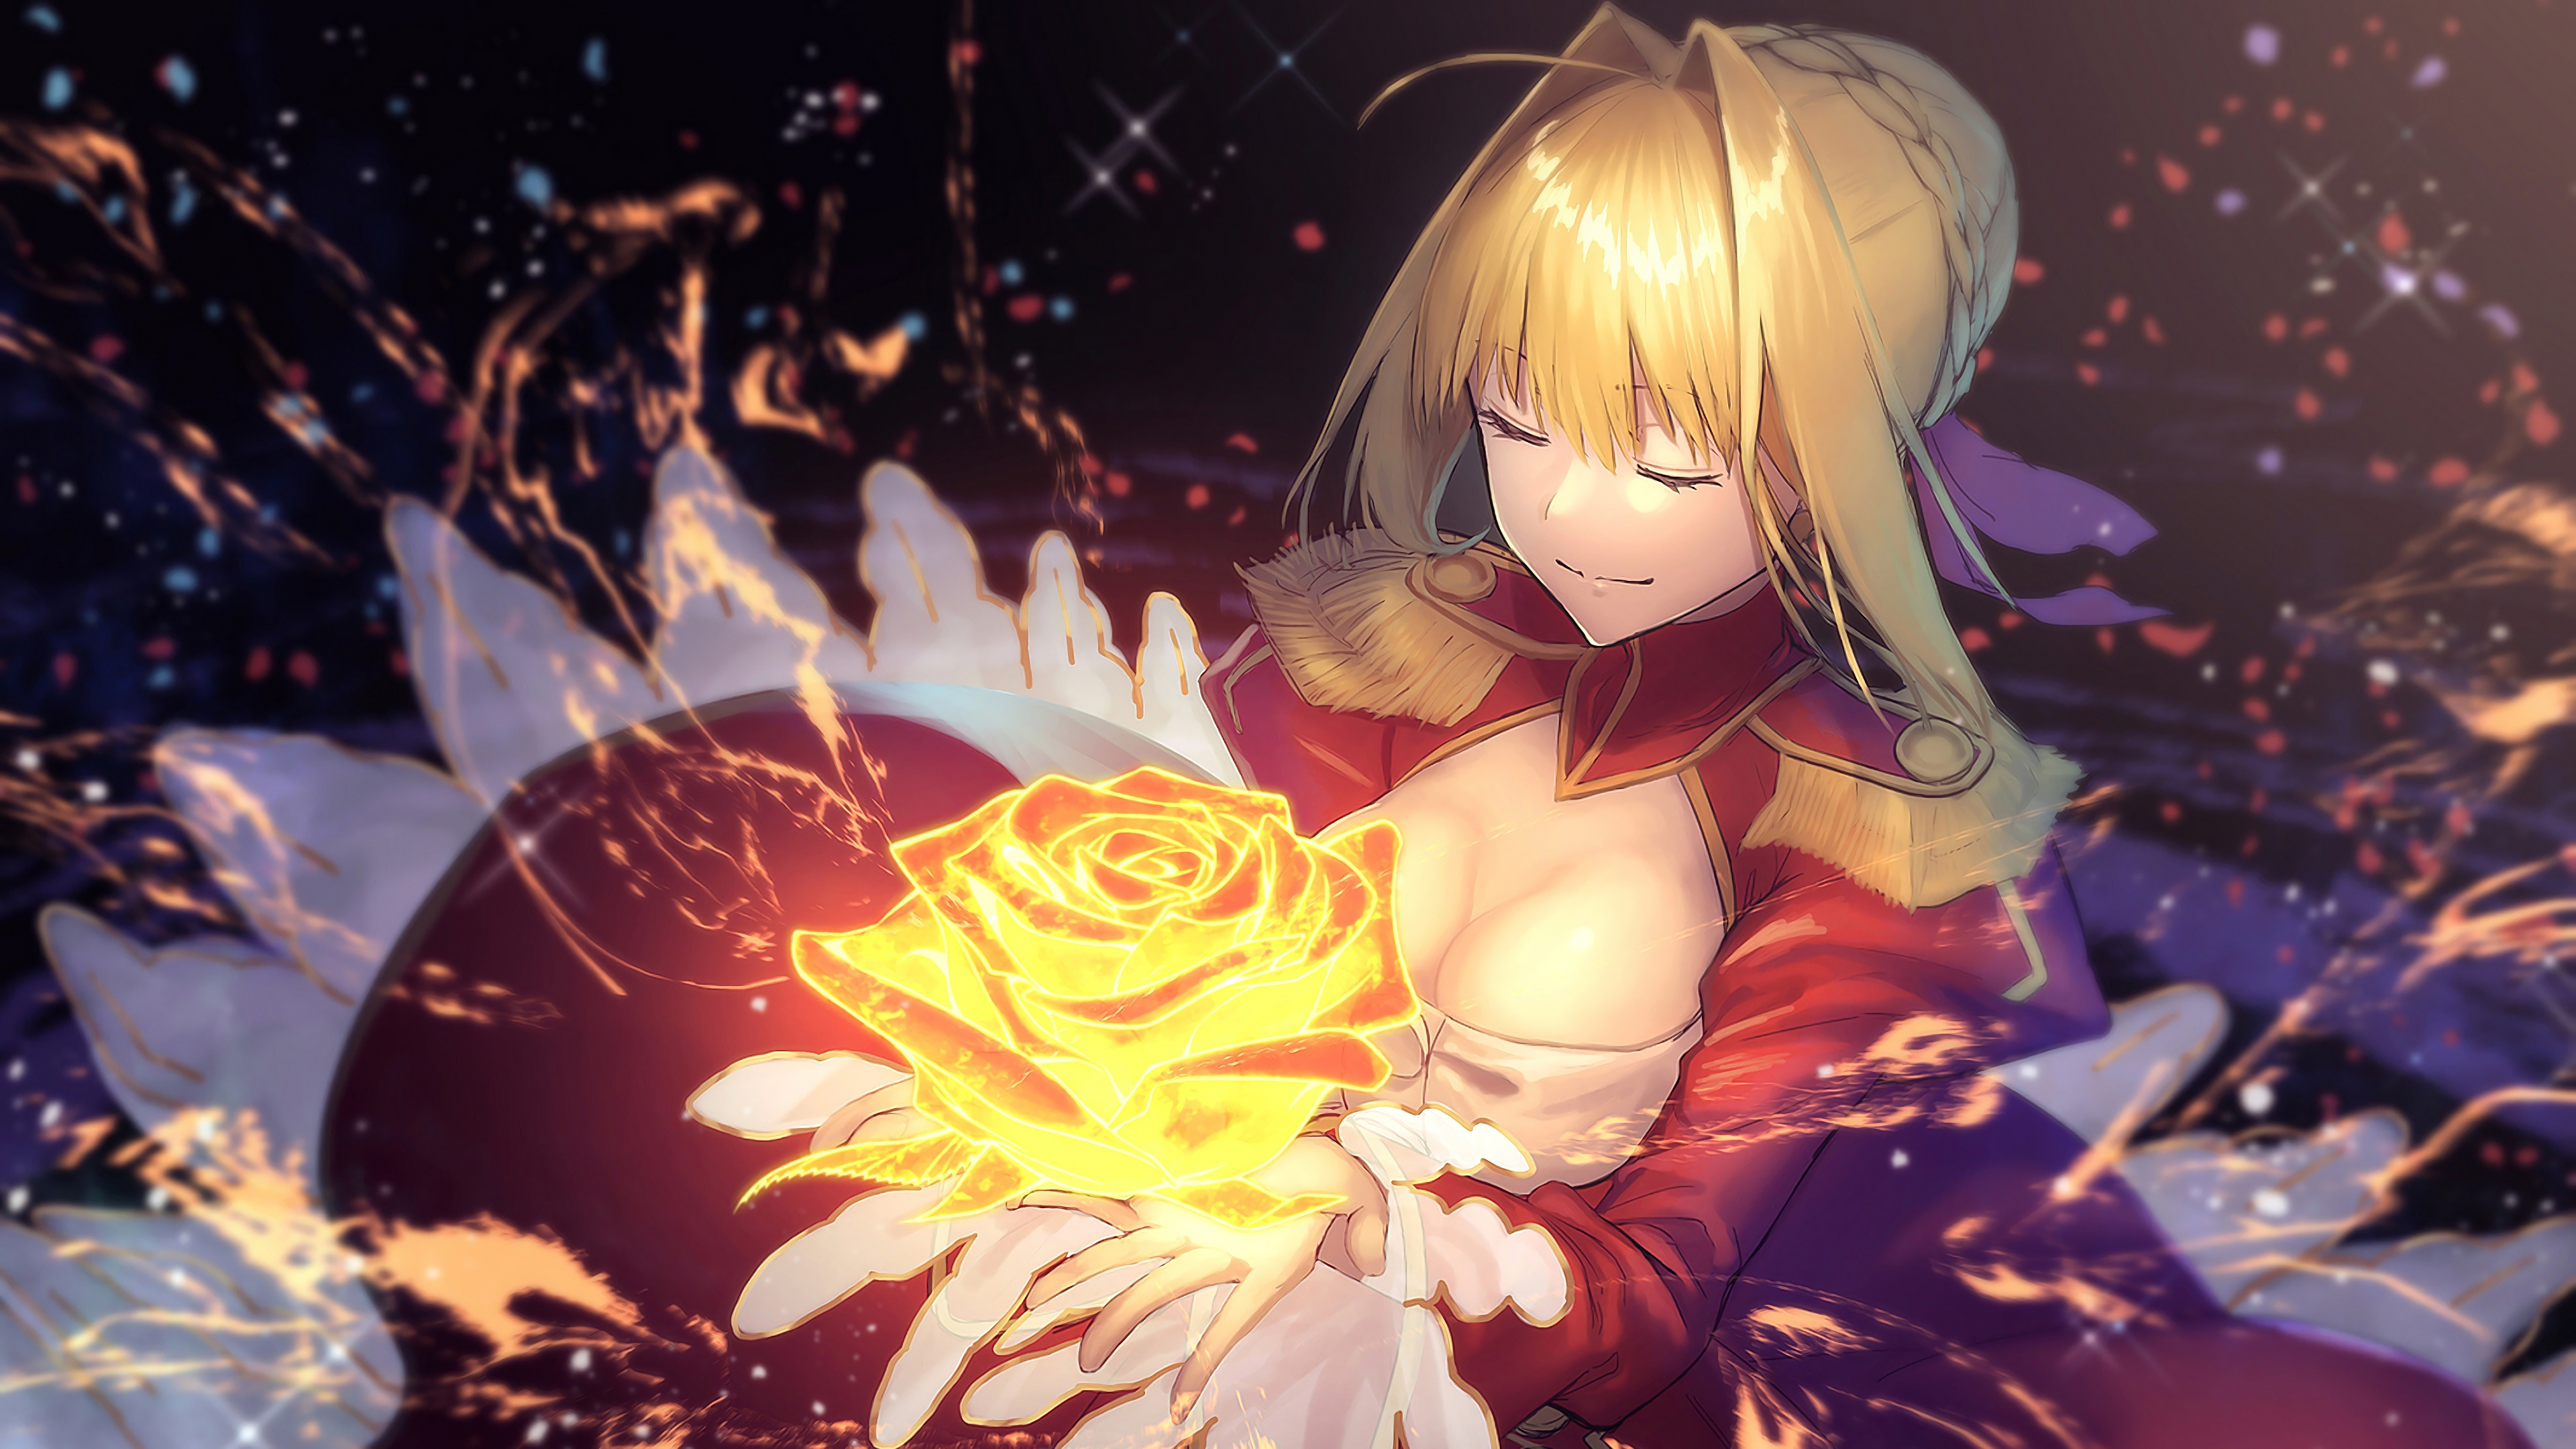 1515 Saber Hd Wallpapers Background Images Wallpaper